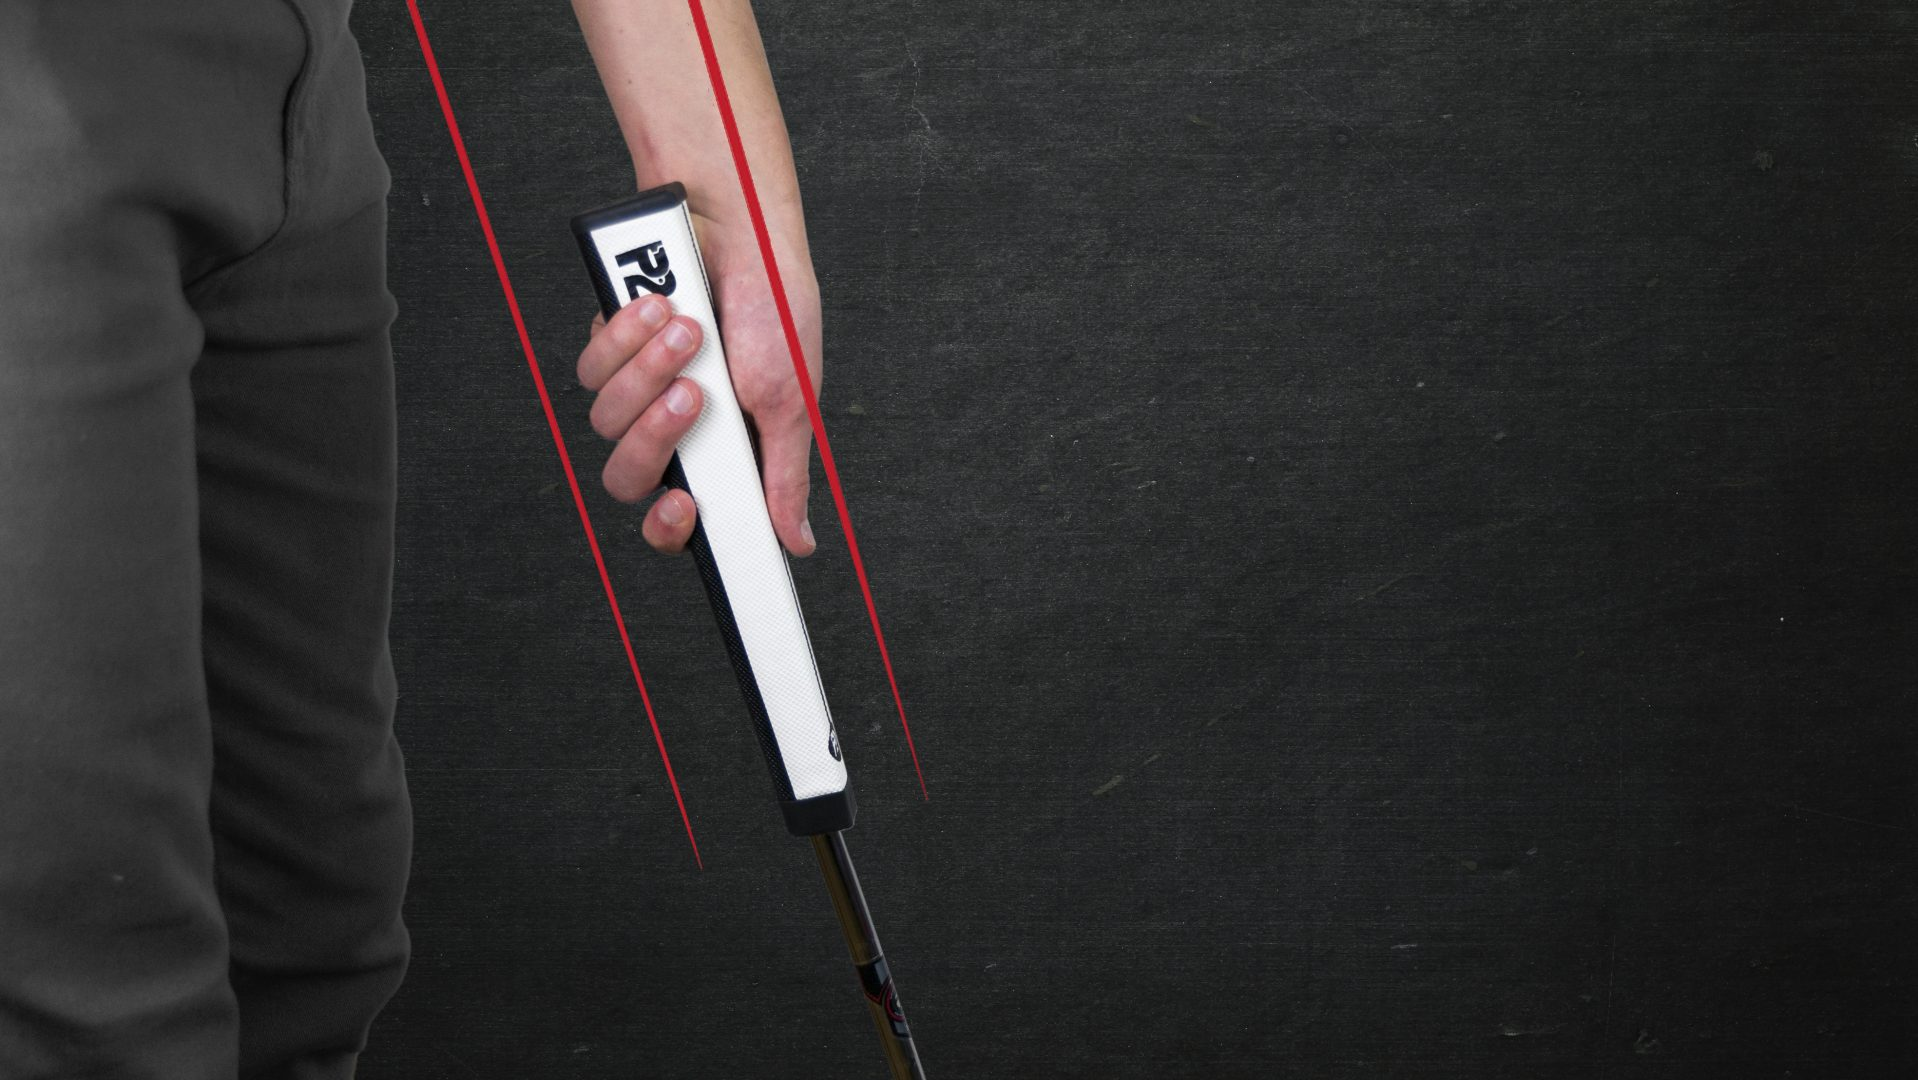 P2 Grips Improve Your Putting